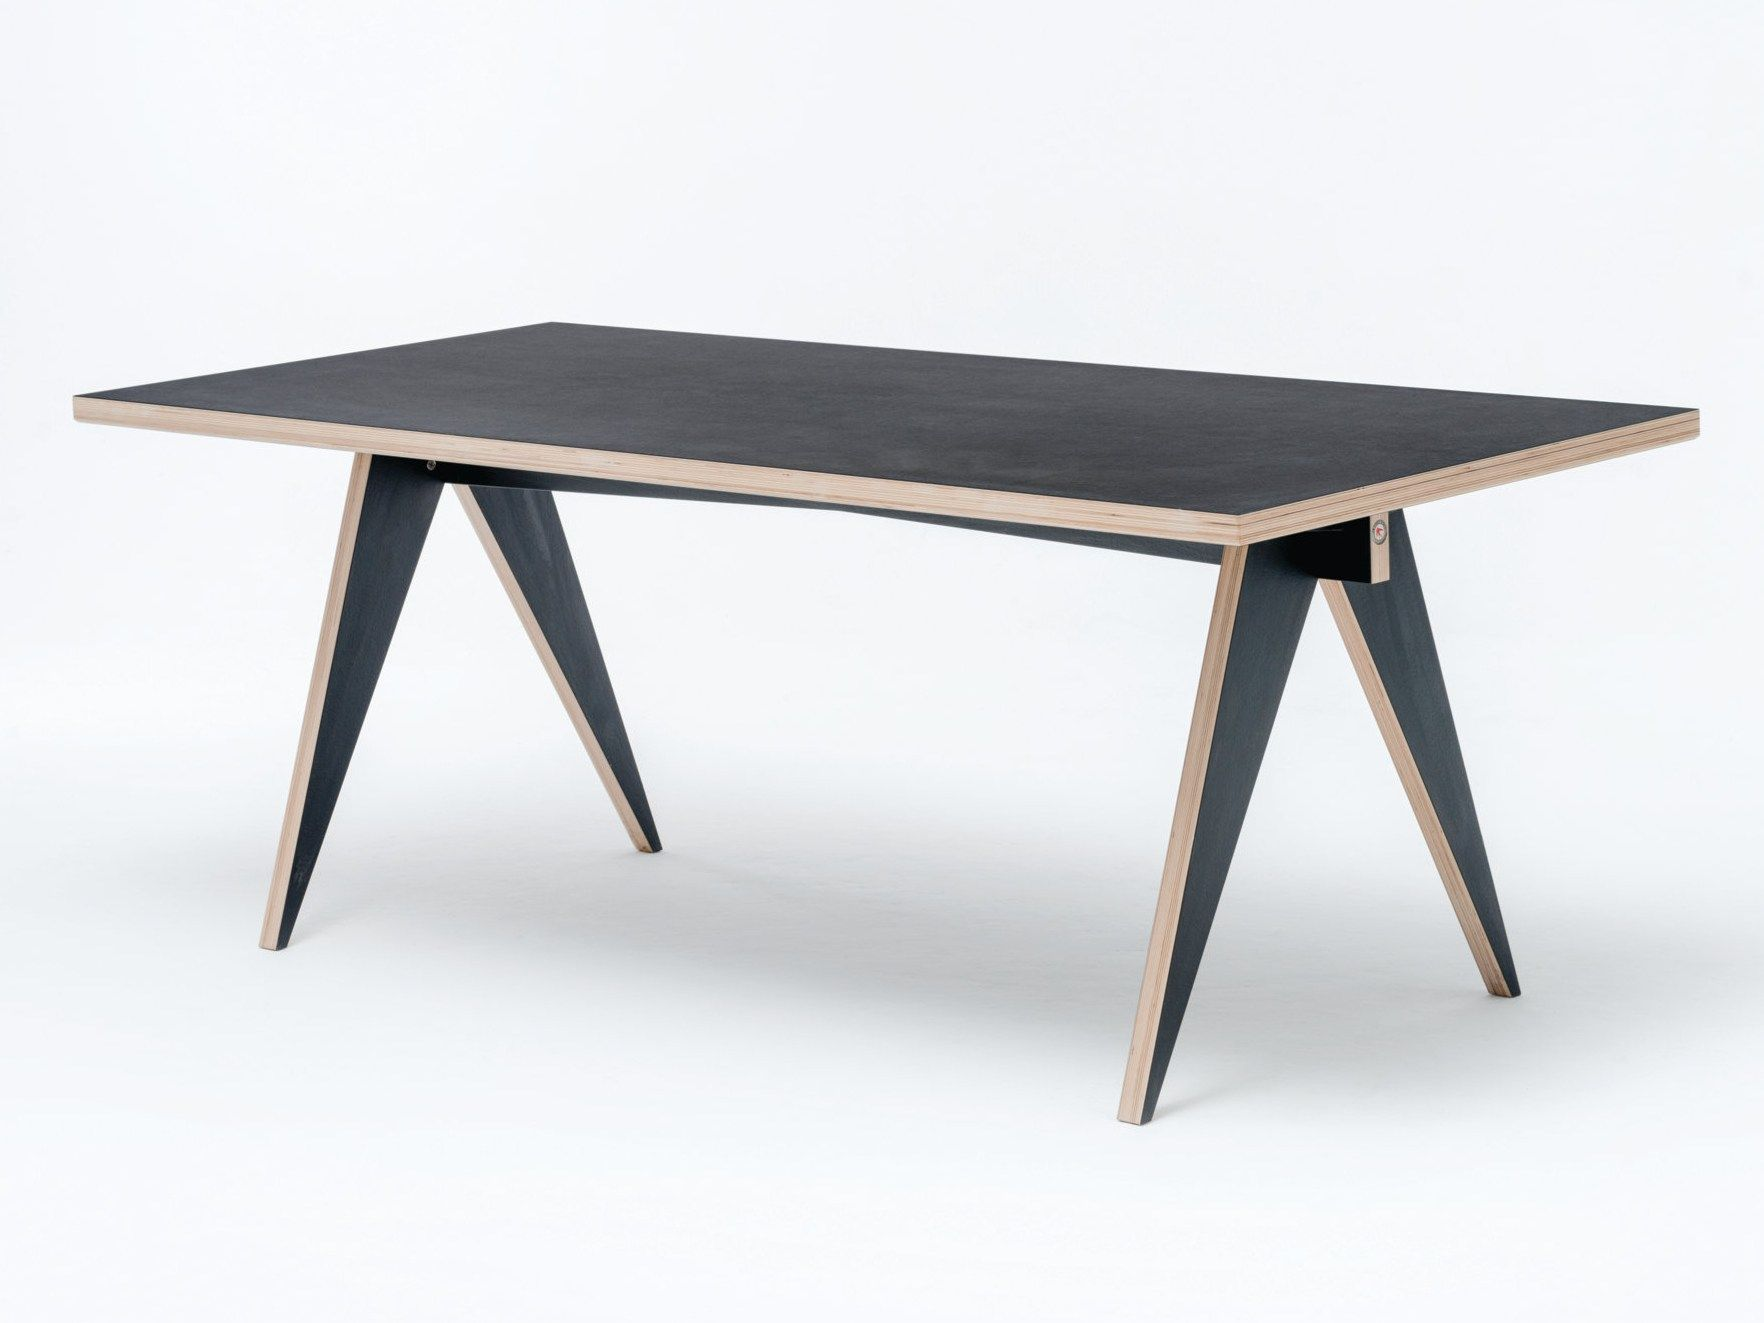 st calipers bd | plywood, tables and plywood furniture